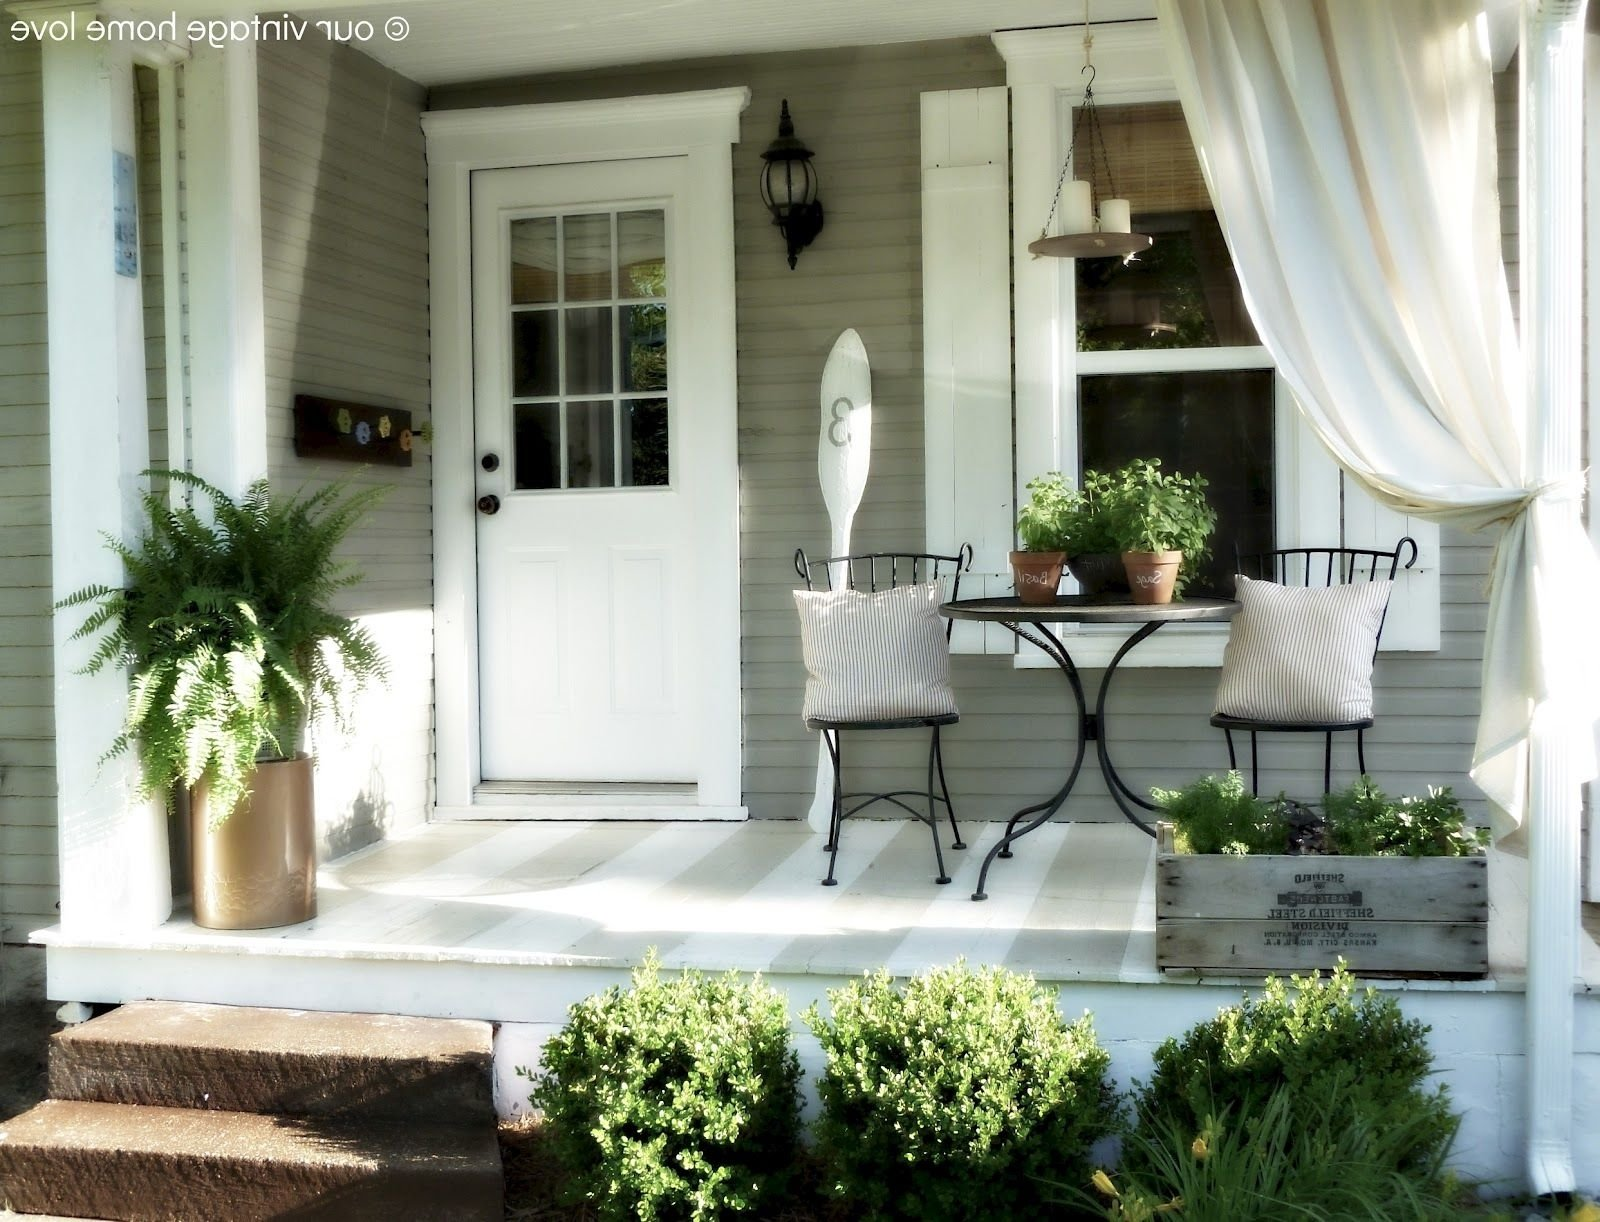 10 Spectacular Small Front Porch Ideas Pictures beautiful small front porch decorating ideas gallery decorating 1 2020